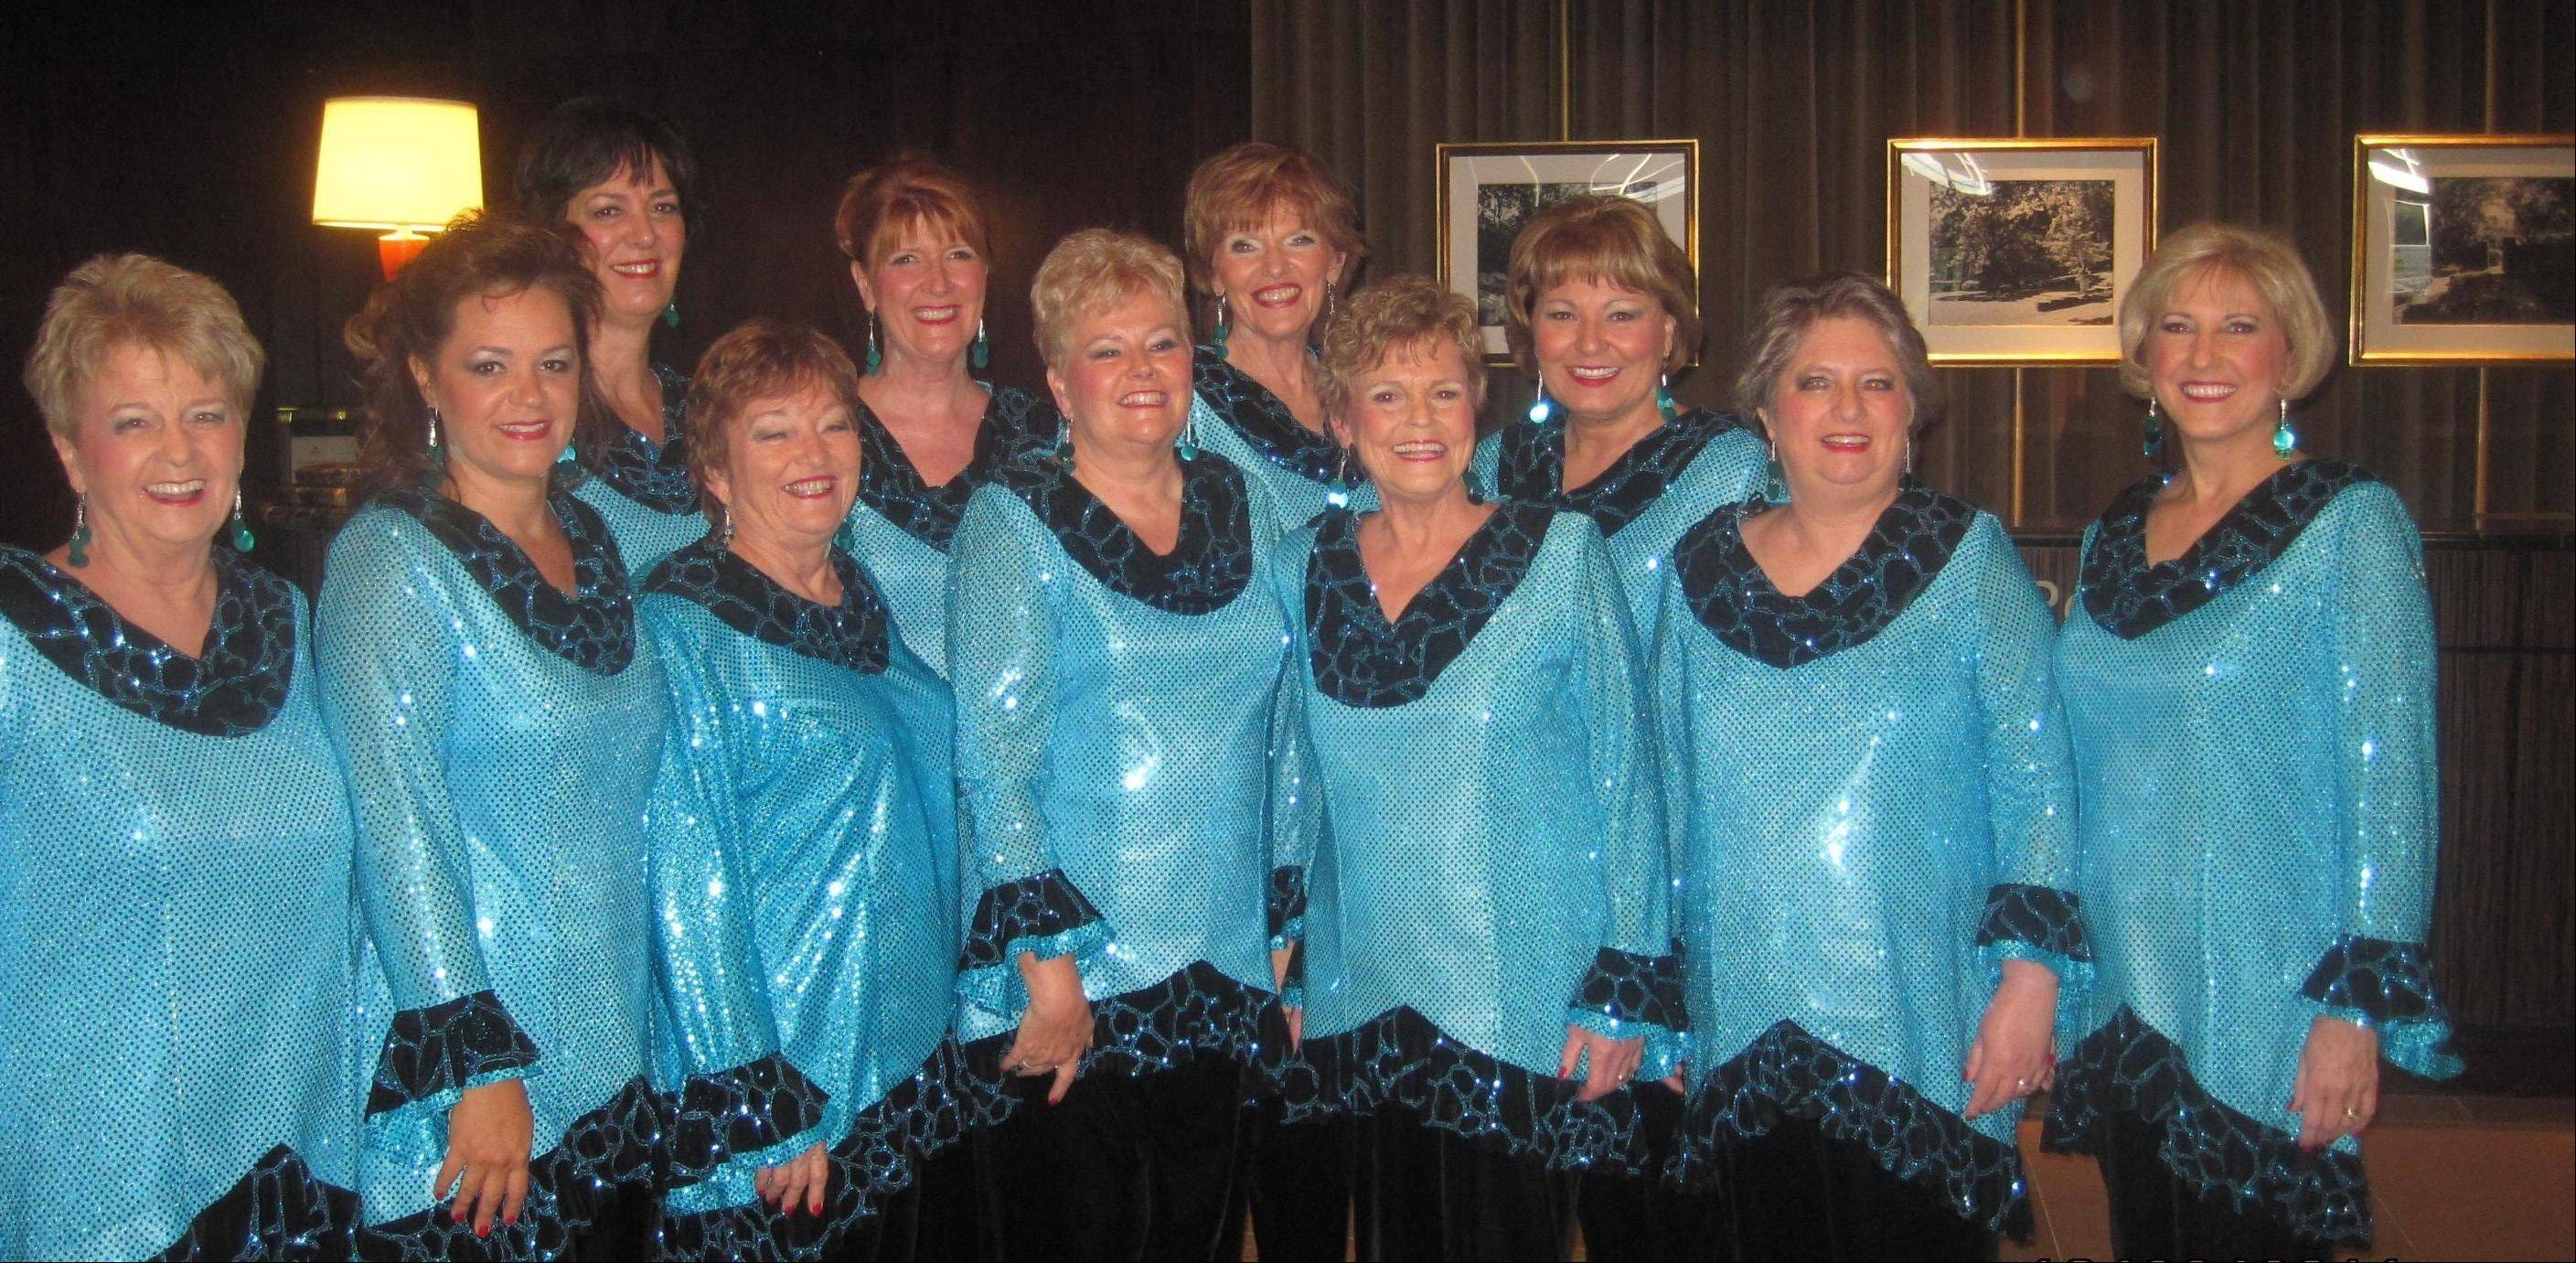 Choral-Aires Chorus will provide musical interludes between storytellers with a small quartet, A La Carte, at the Larsen Park Storytelling Festival.